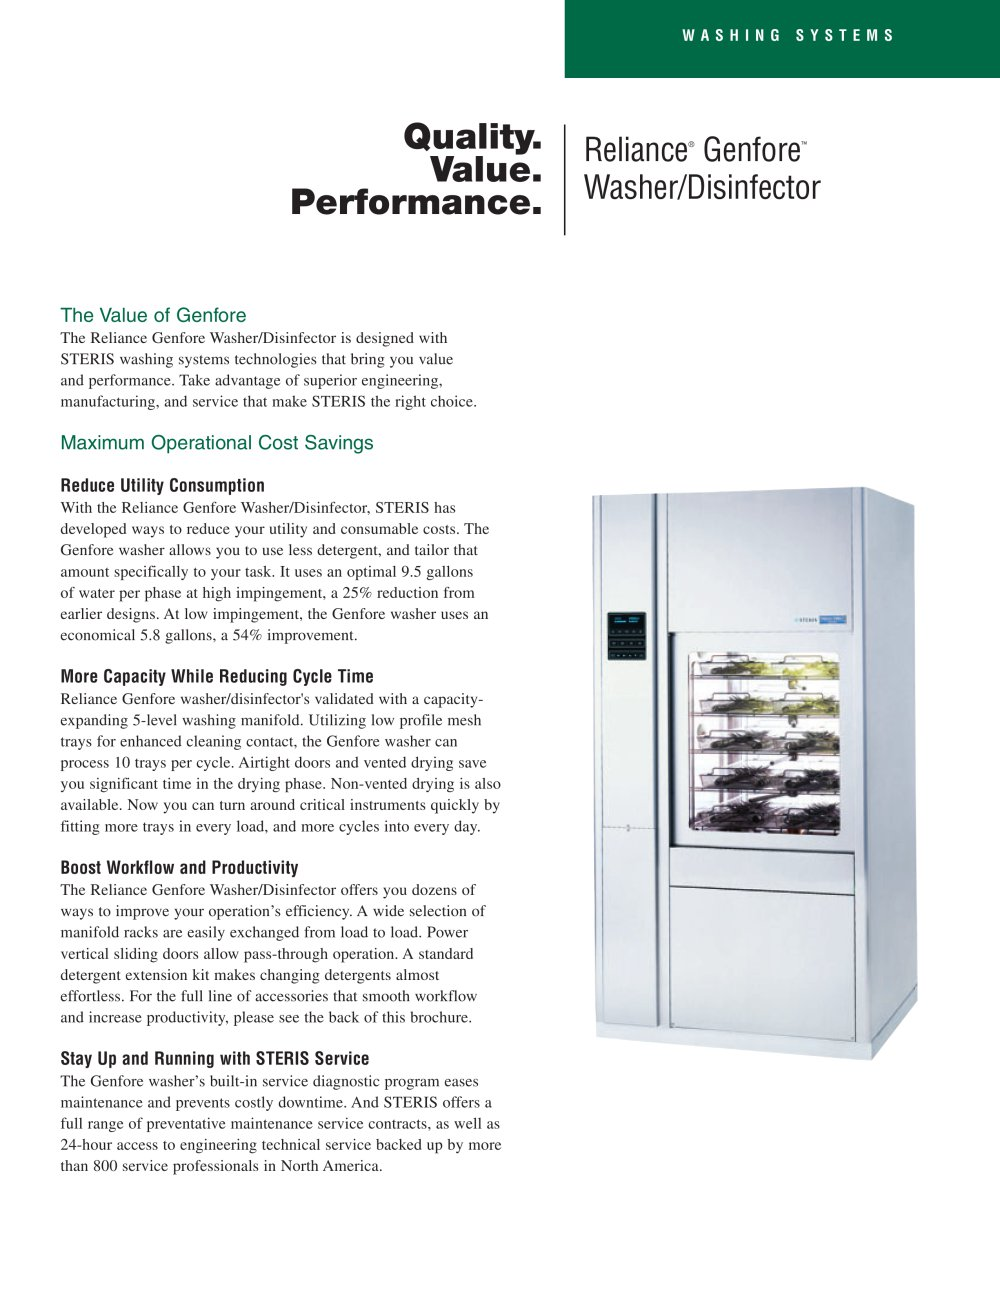 Reliance Genfore Washer/Disinfector - 1 / 2 Pages